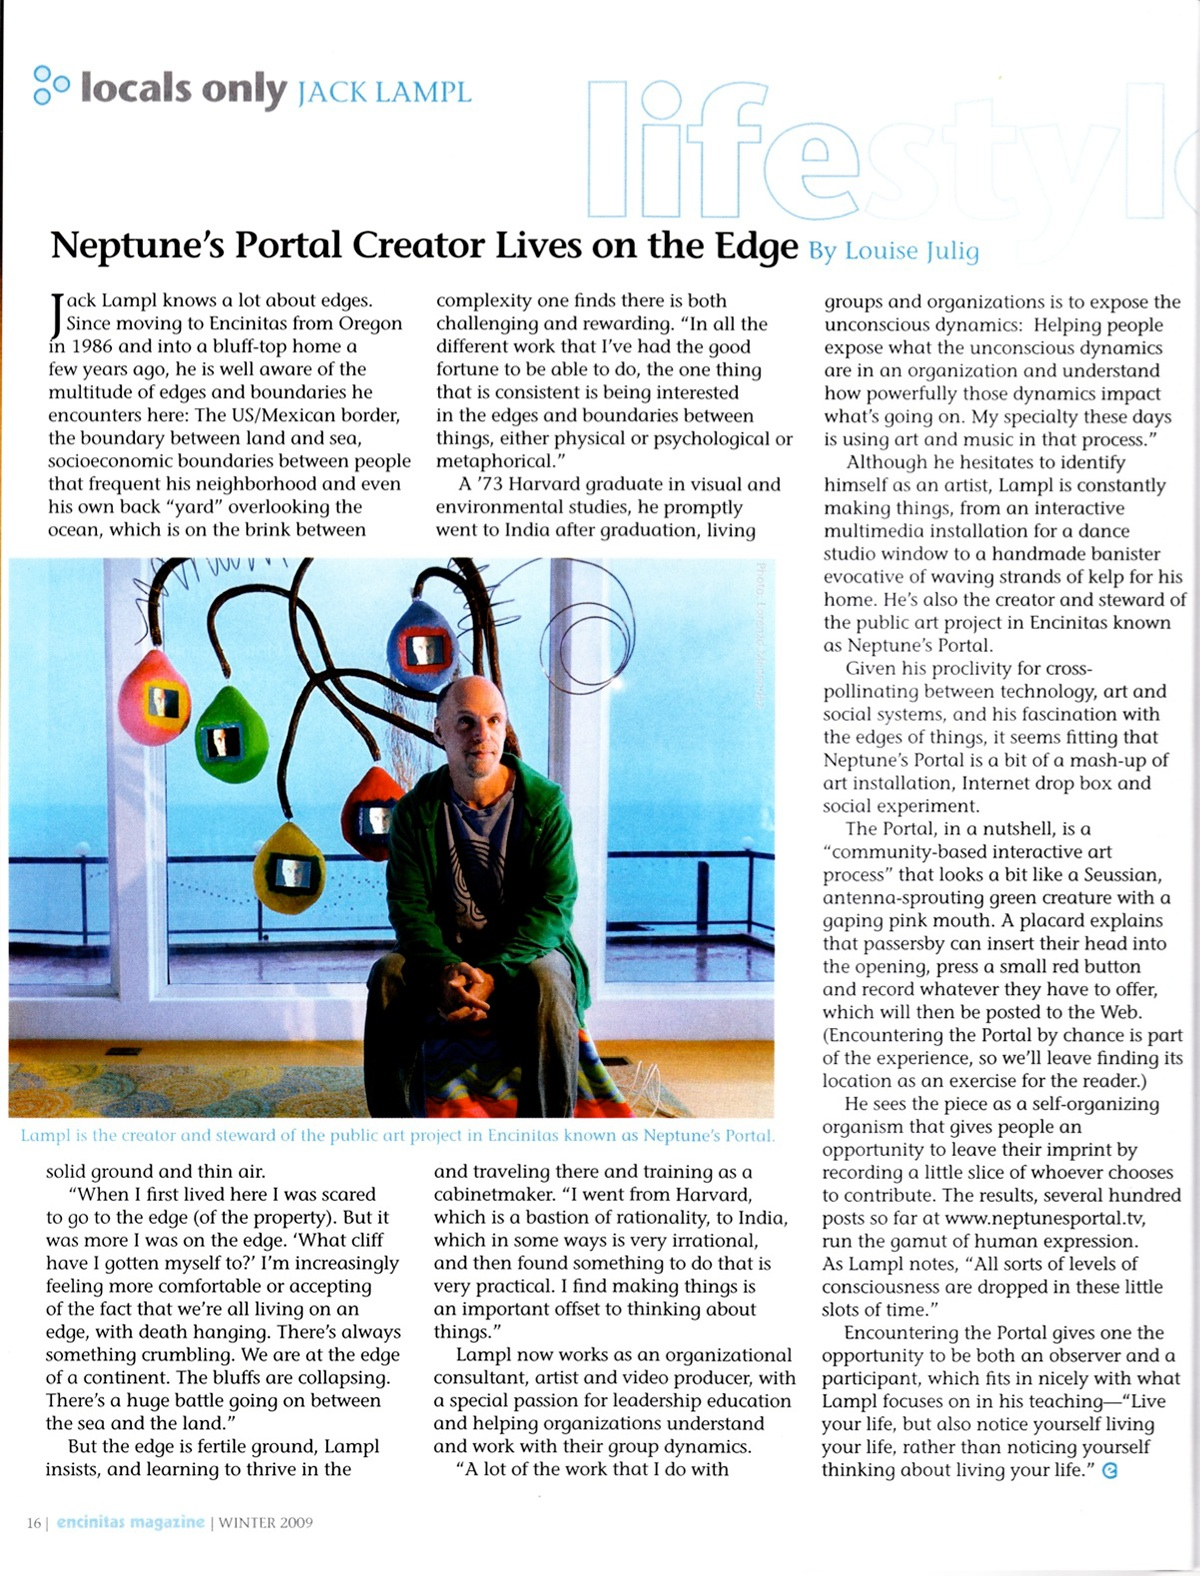 Encinitas Magazine: Local Artist Lives on the Edge